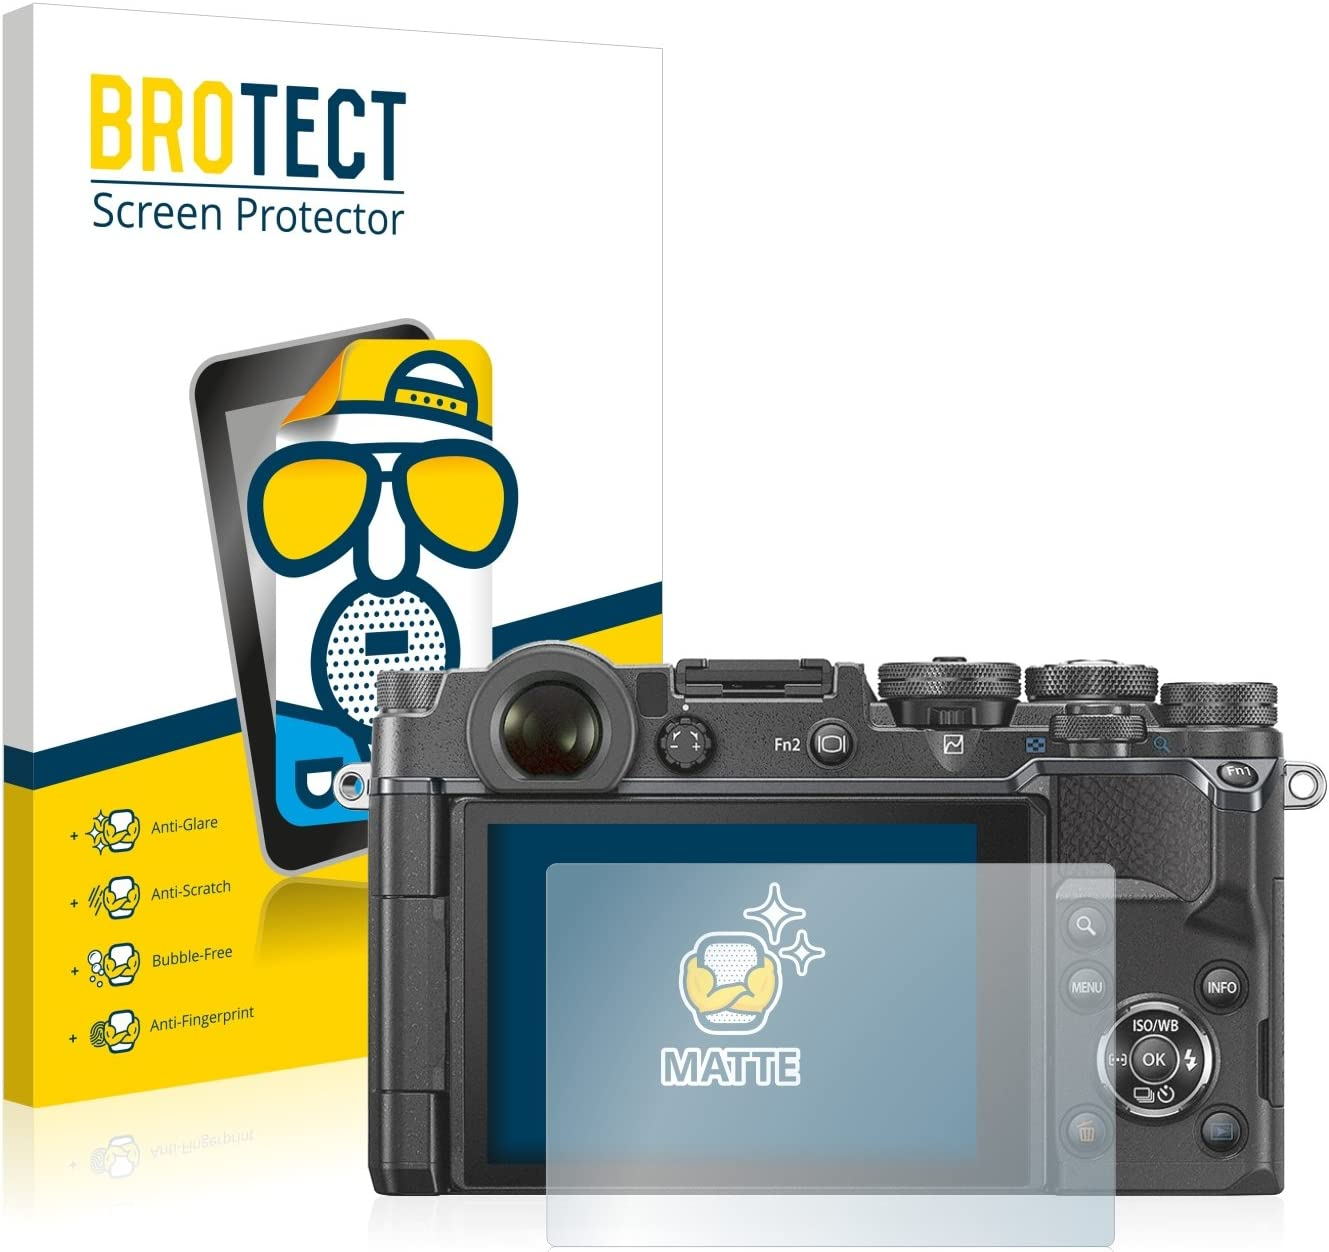 Anti-Fingerprint Protection Film brotect 2-Pack Screen Protector Anti-Glare compatible with Olympus PEN-F Screen Protector Matte